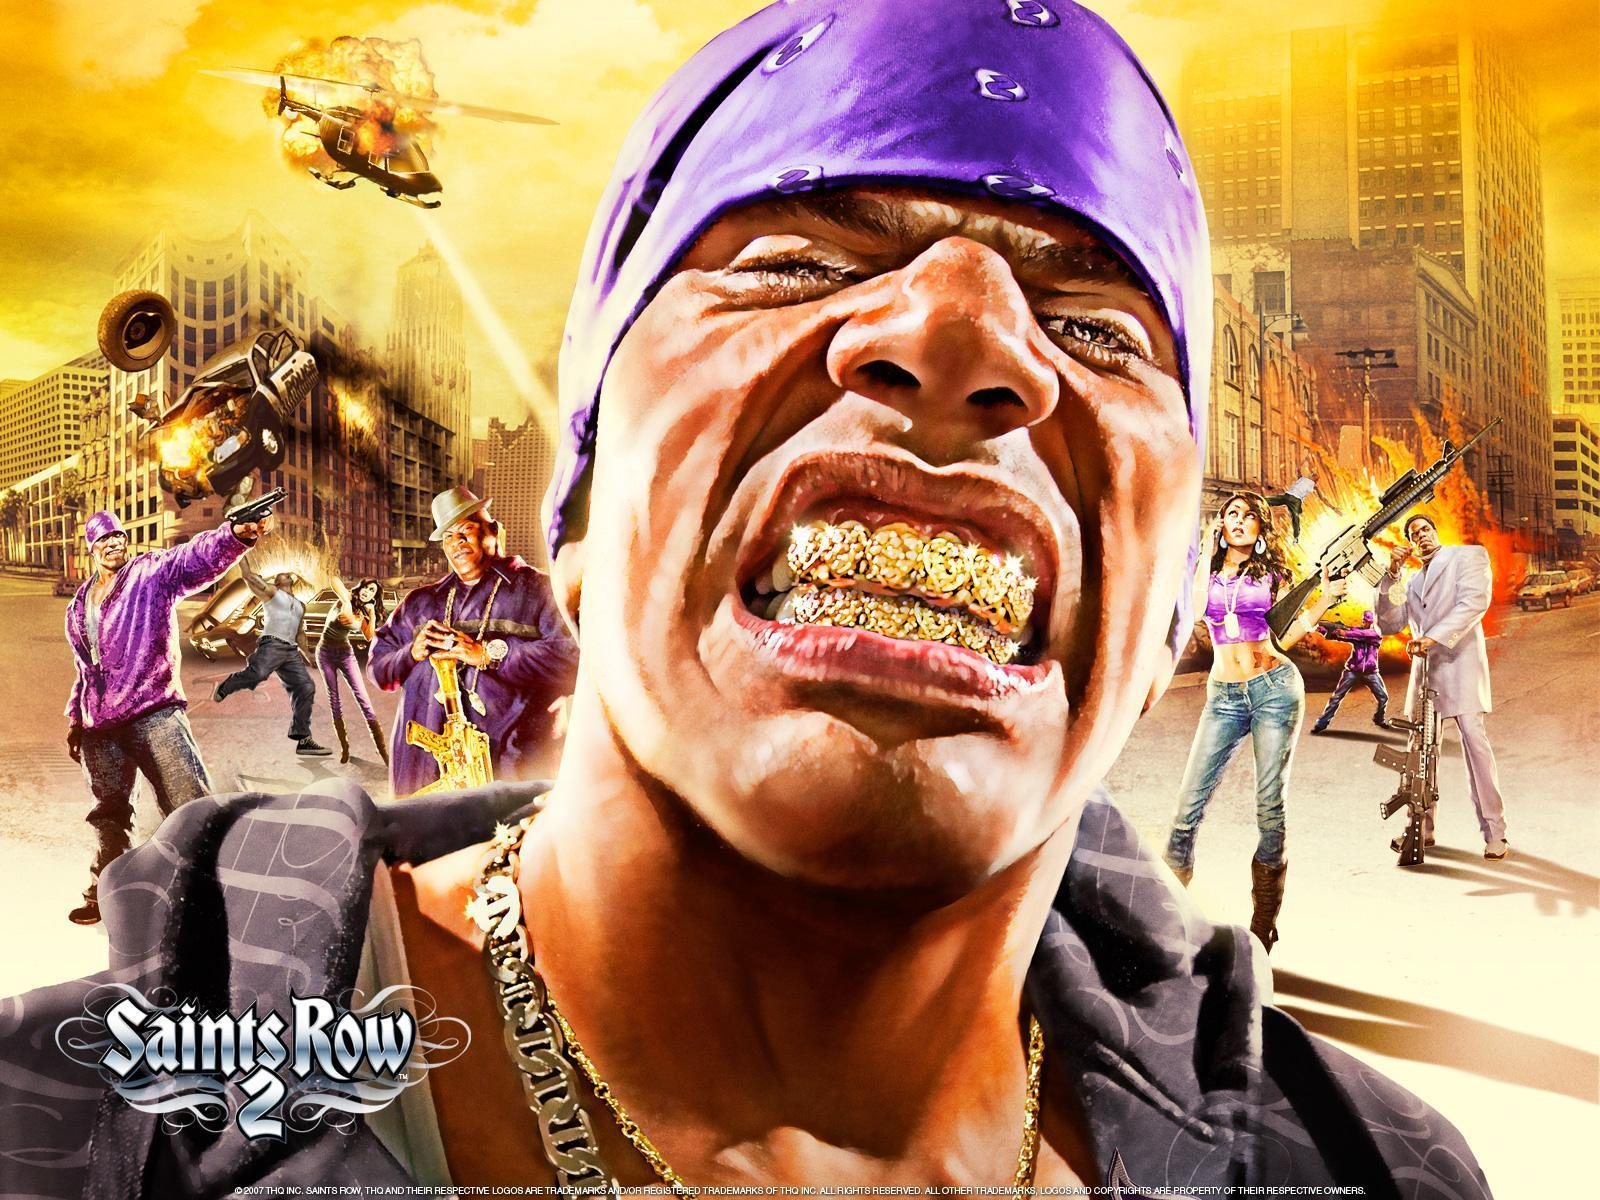 Saints row 2 images saints row 2 hd wallpaper and background saints row 2 images saints row 2 hd wallpaper and background photos voltagebd Images